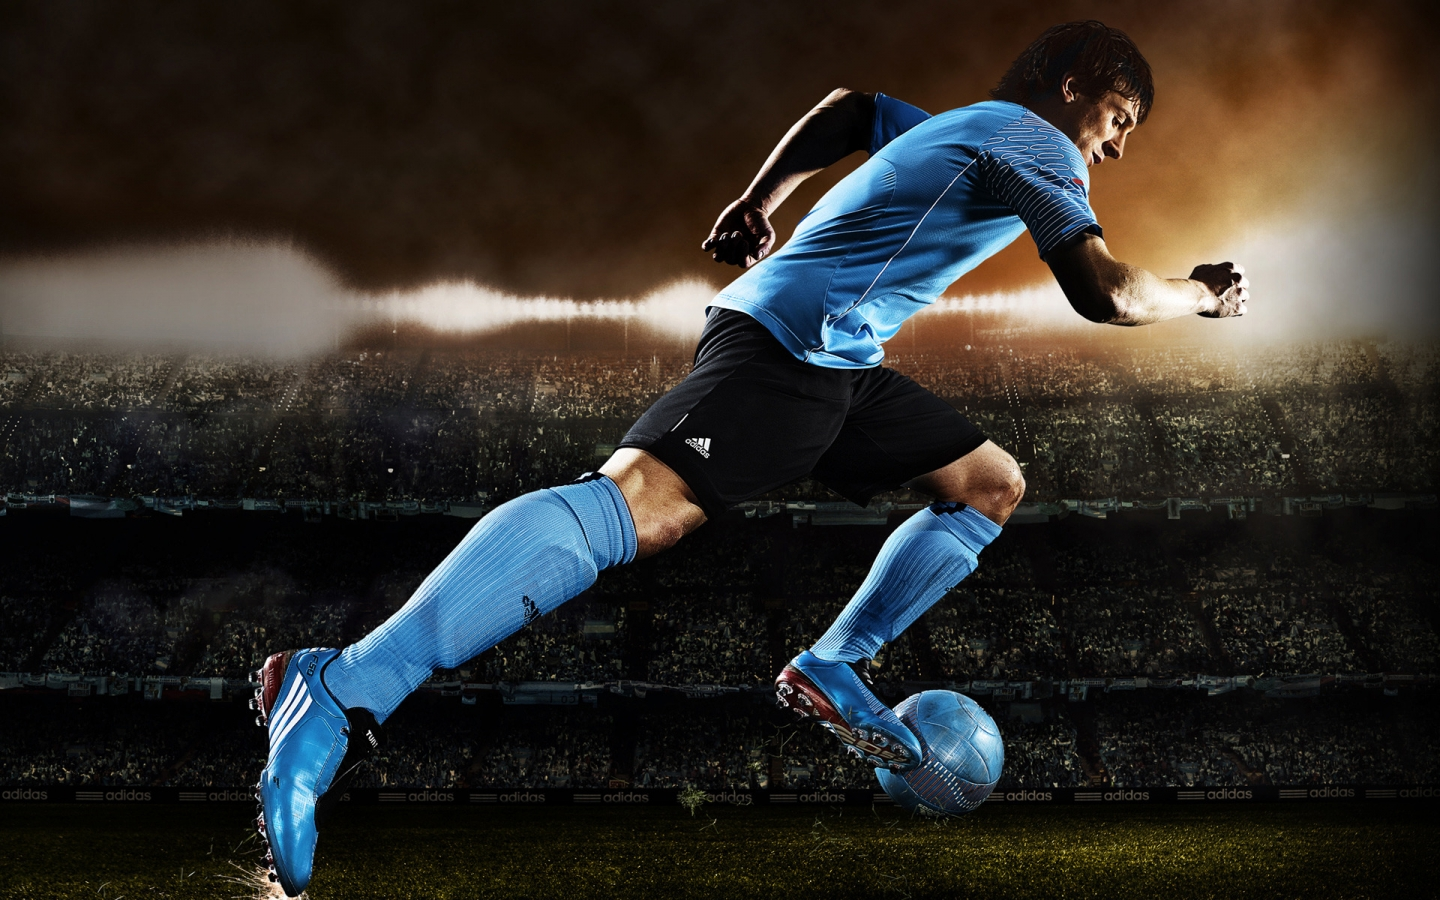 Lionel Messi Adidas for 1440 x 900 widescreen resolution